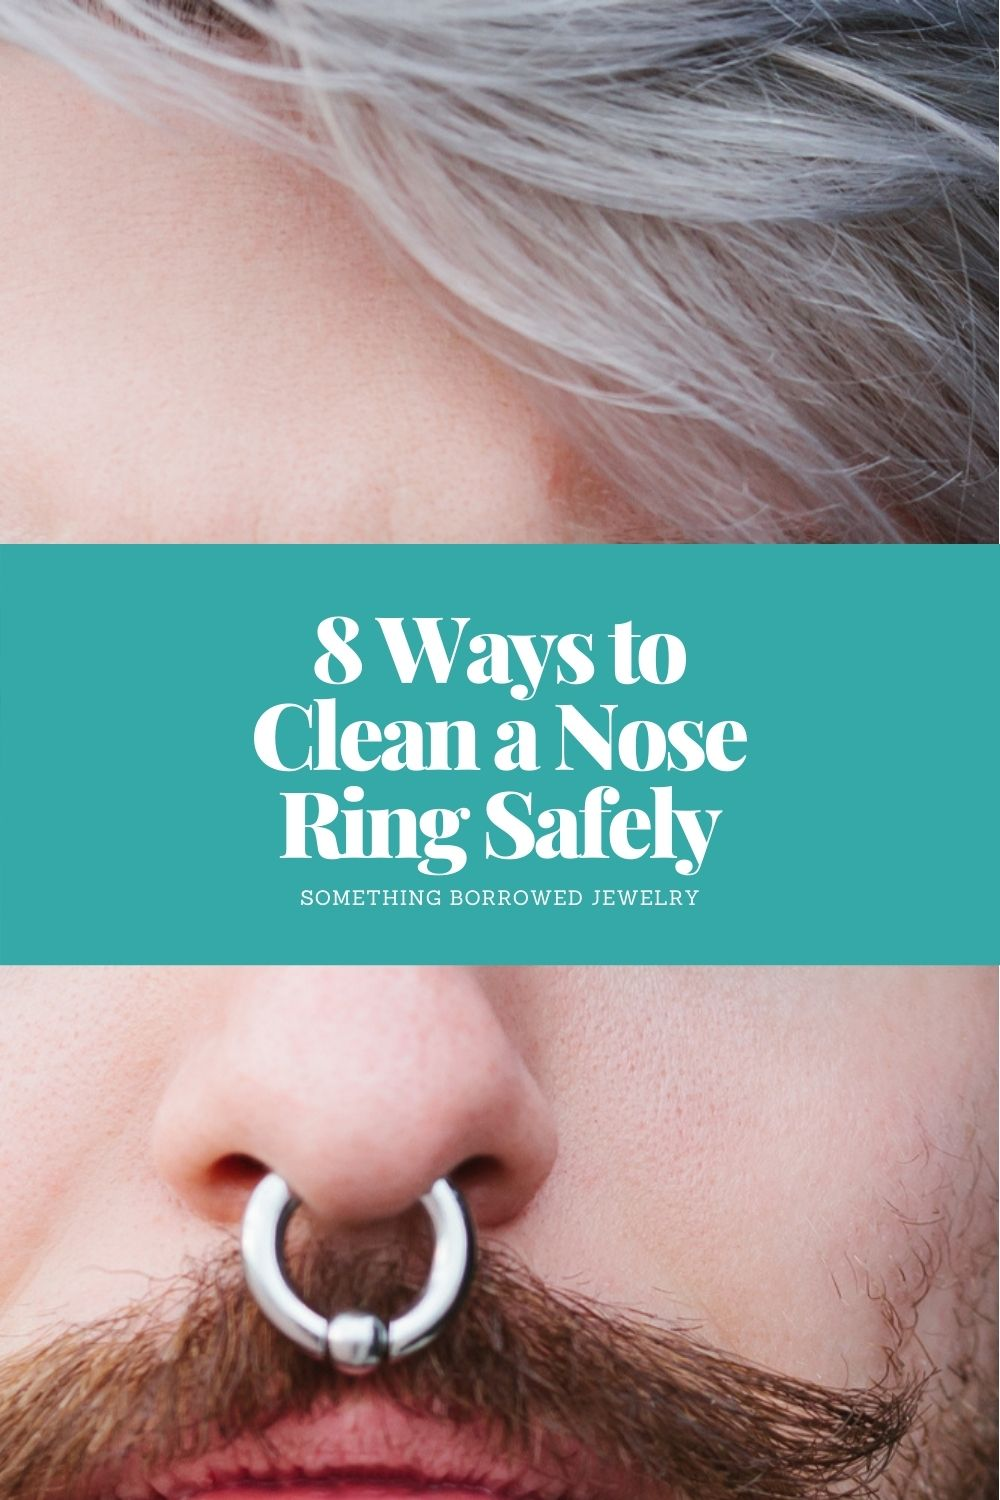 8 Ways to Clean a Nose Ring Safely pin